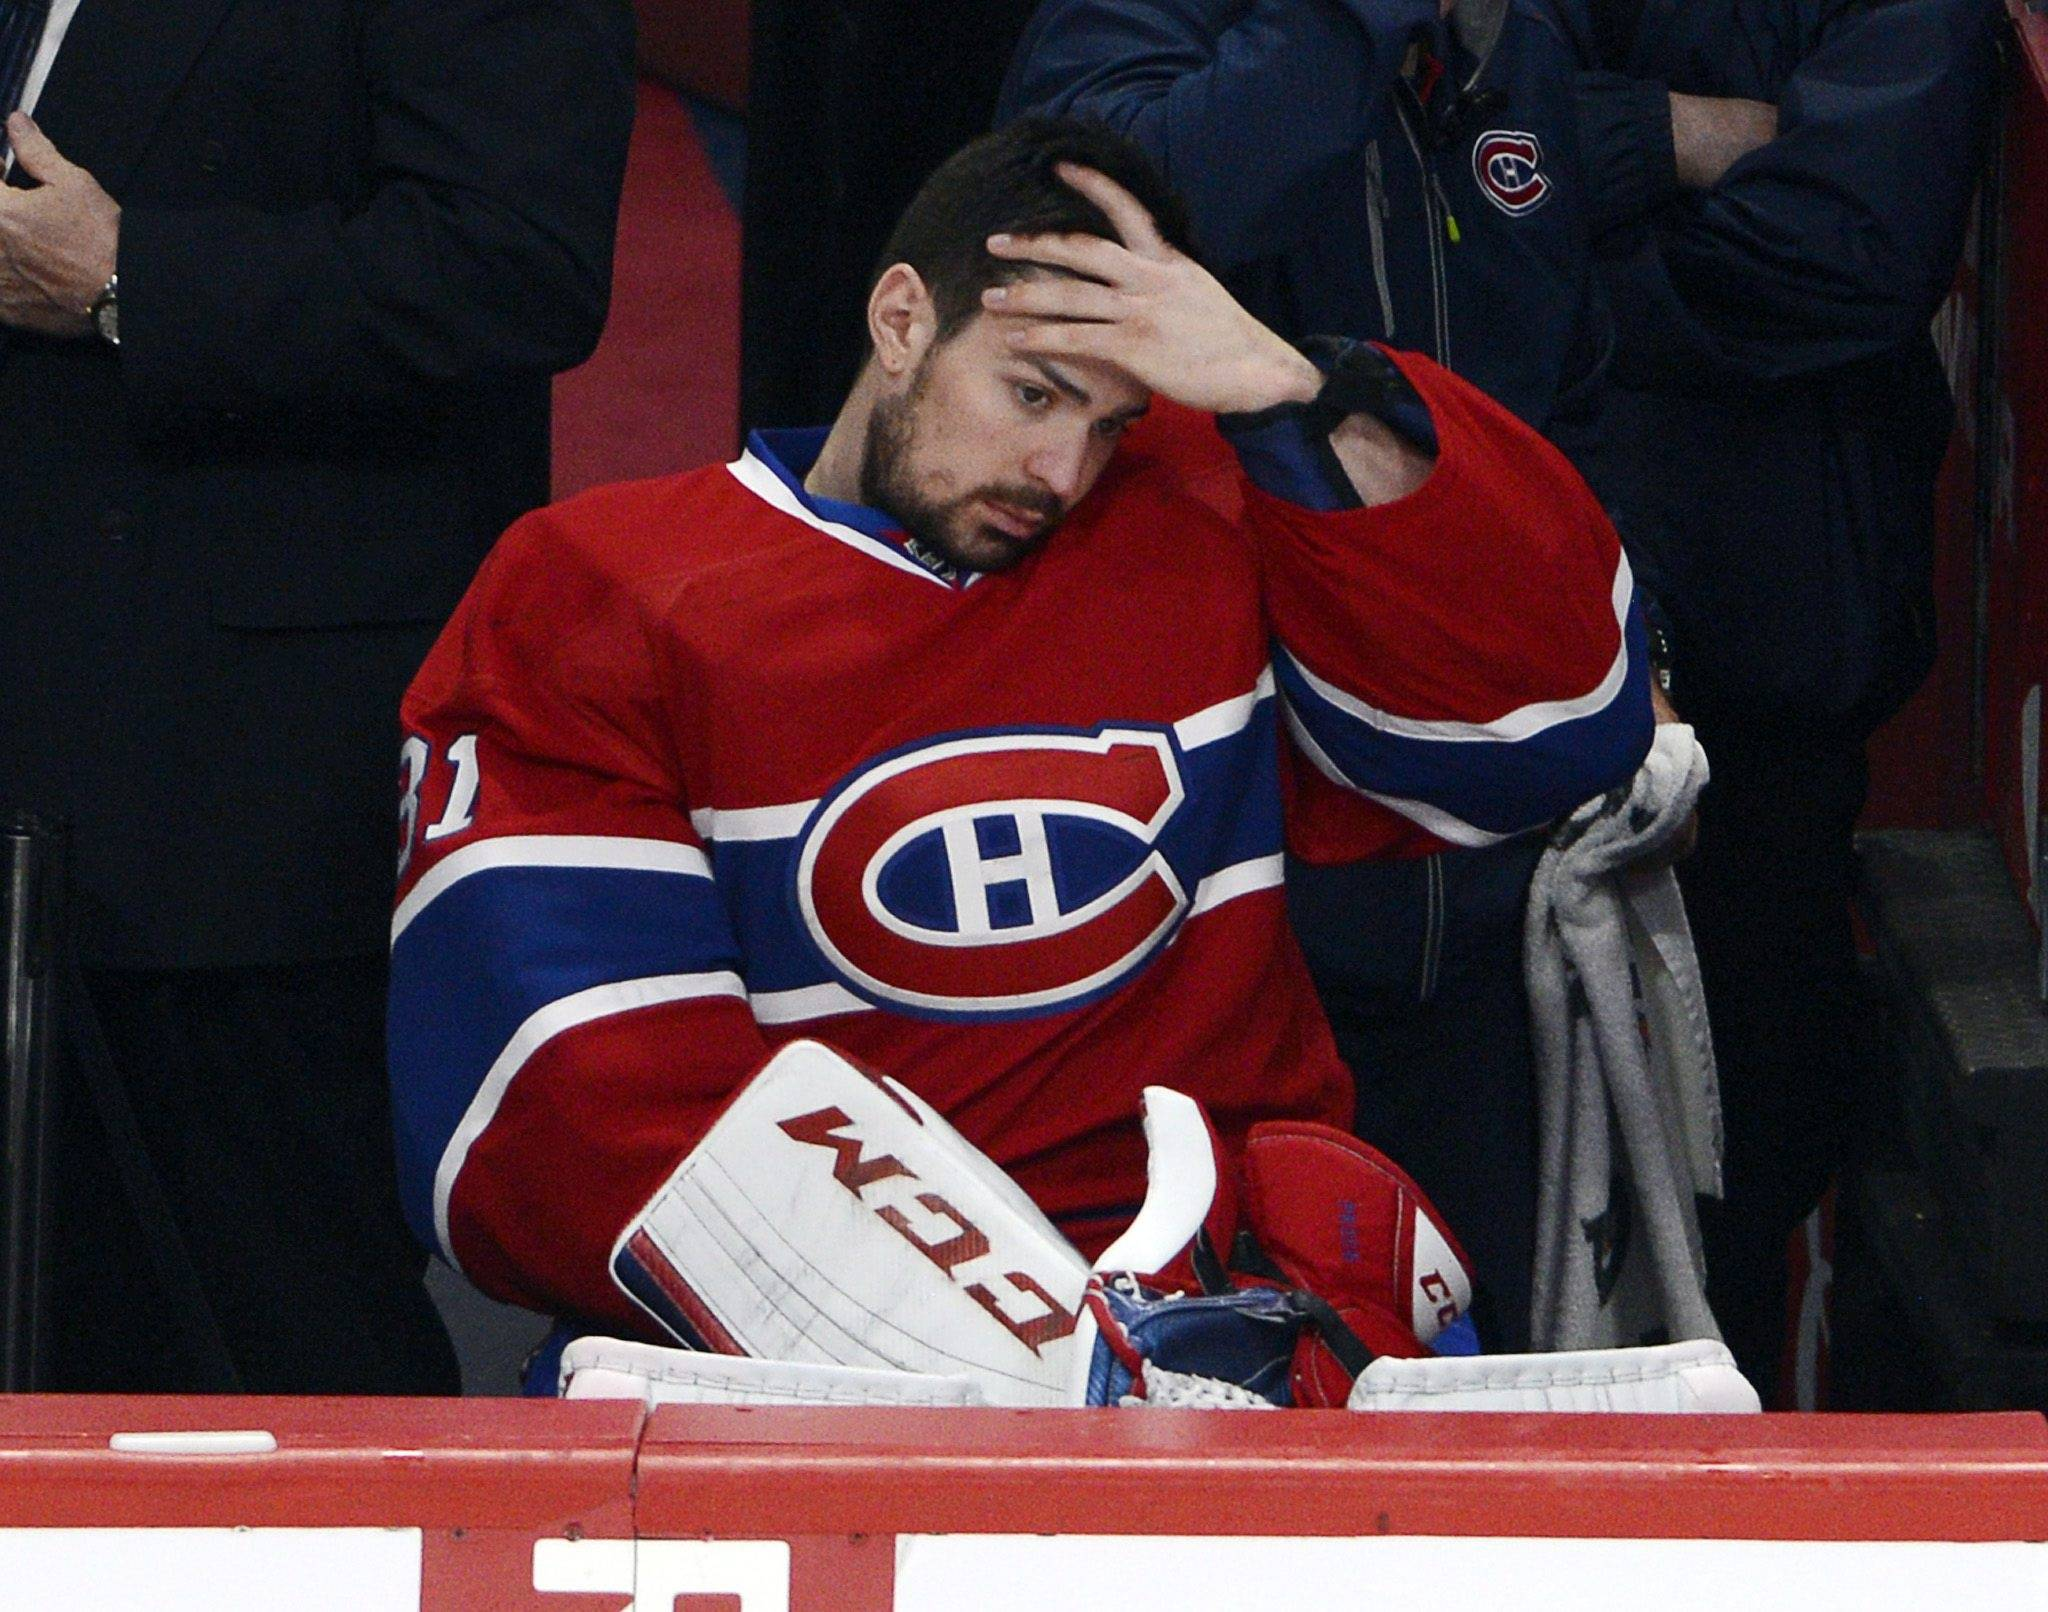 Montreal Canadiens goalie Carey Price (31) watches from the bench during the third period in Game 1 of the Eastern Conference finals in the NHL hockey Stanley Cup playoffs in Montreal on Saturday, May 17, 2014. The Rangers won 7-2.